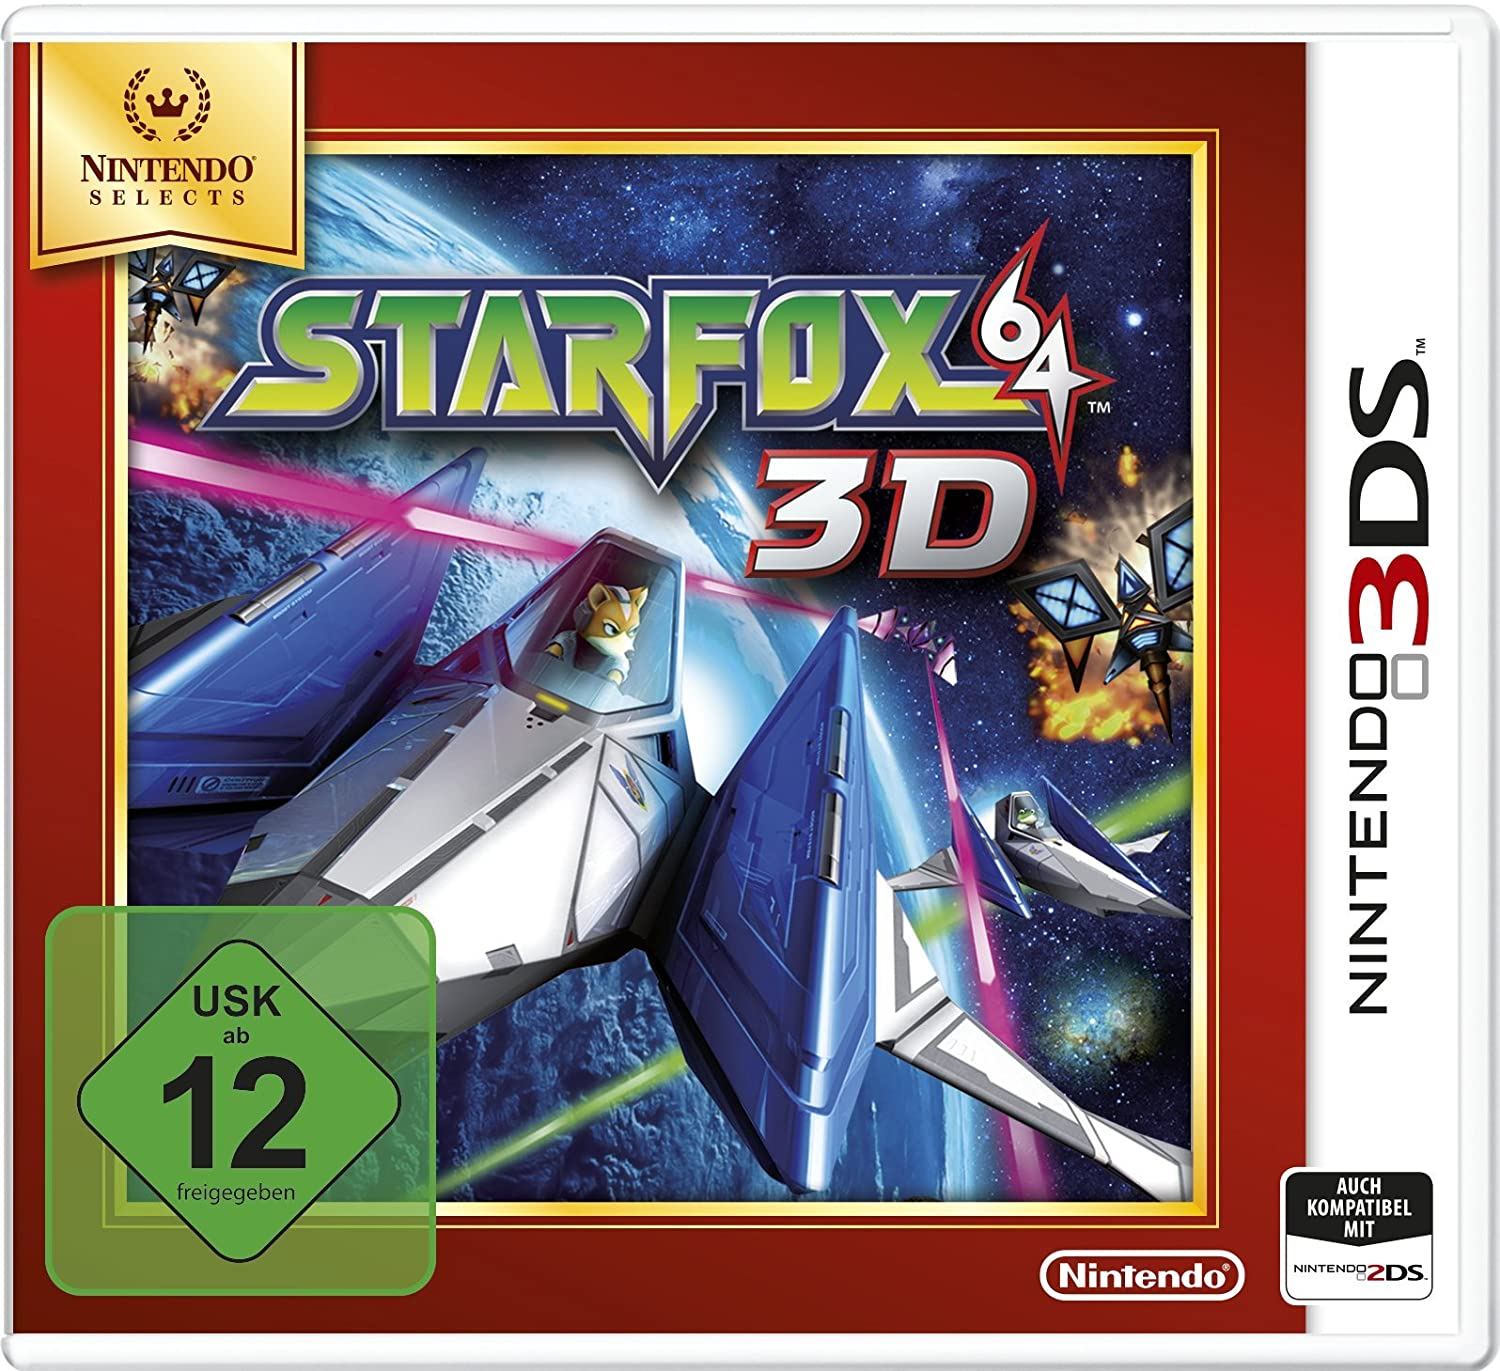 Nintendo of Europe GmbH Star Fox 64 3D Selects (USK ab 12 Jahre) 3DS